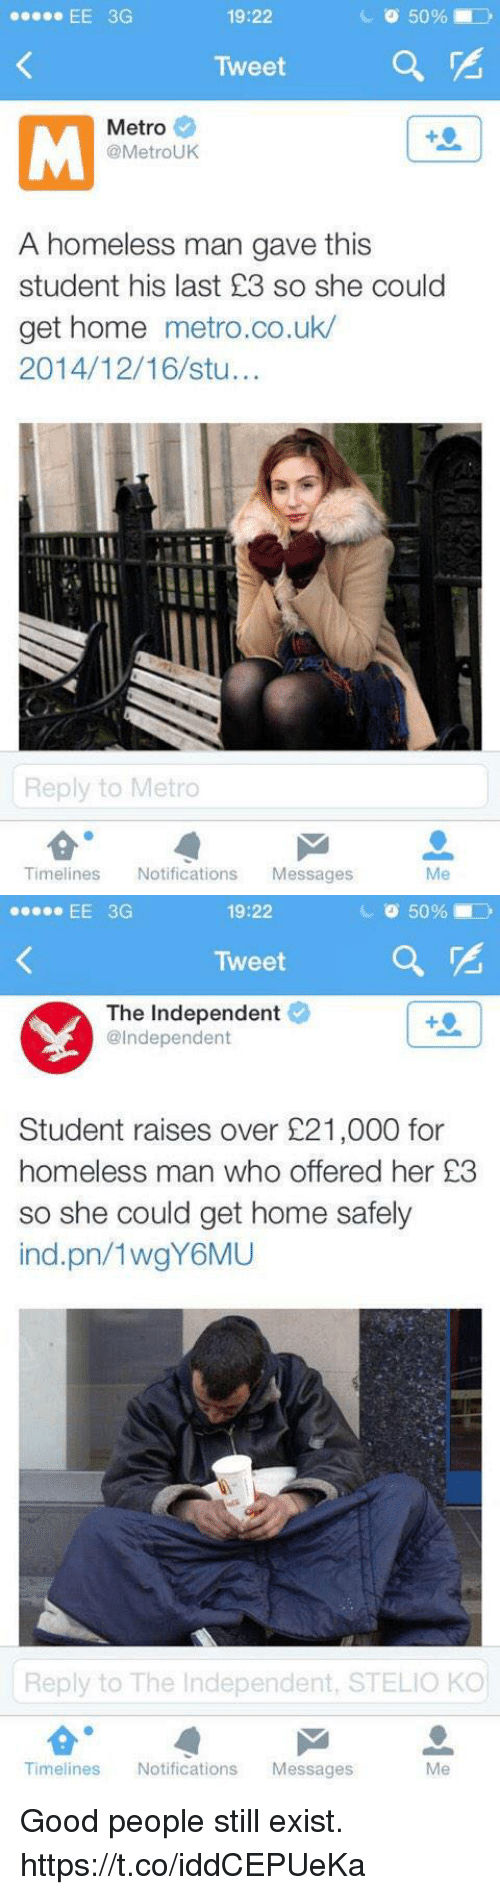 Uks: 19:22  Tweet  Metro  @MetroUK  A homeless man gave this  student his last £3 so she could  get home metro.co.uk/  2014/12/16/stu...  Ily  Reply to Metro  Timelines Notifications Messages  Me   19:22  Tweet  The Independent  se EE 3G  @Independent  Student raises over £21,000 for  homeless man who offered her 23  so she could get home safely  ind.pn/1wgY6MU  Reply to The Independent, STELIO KO  Me  Timelines Notifications Messages Good people still exist. https://t.co/iddCEPUeKa